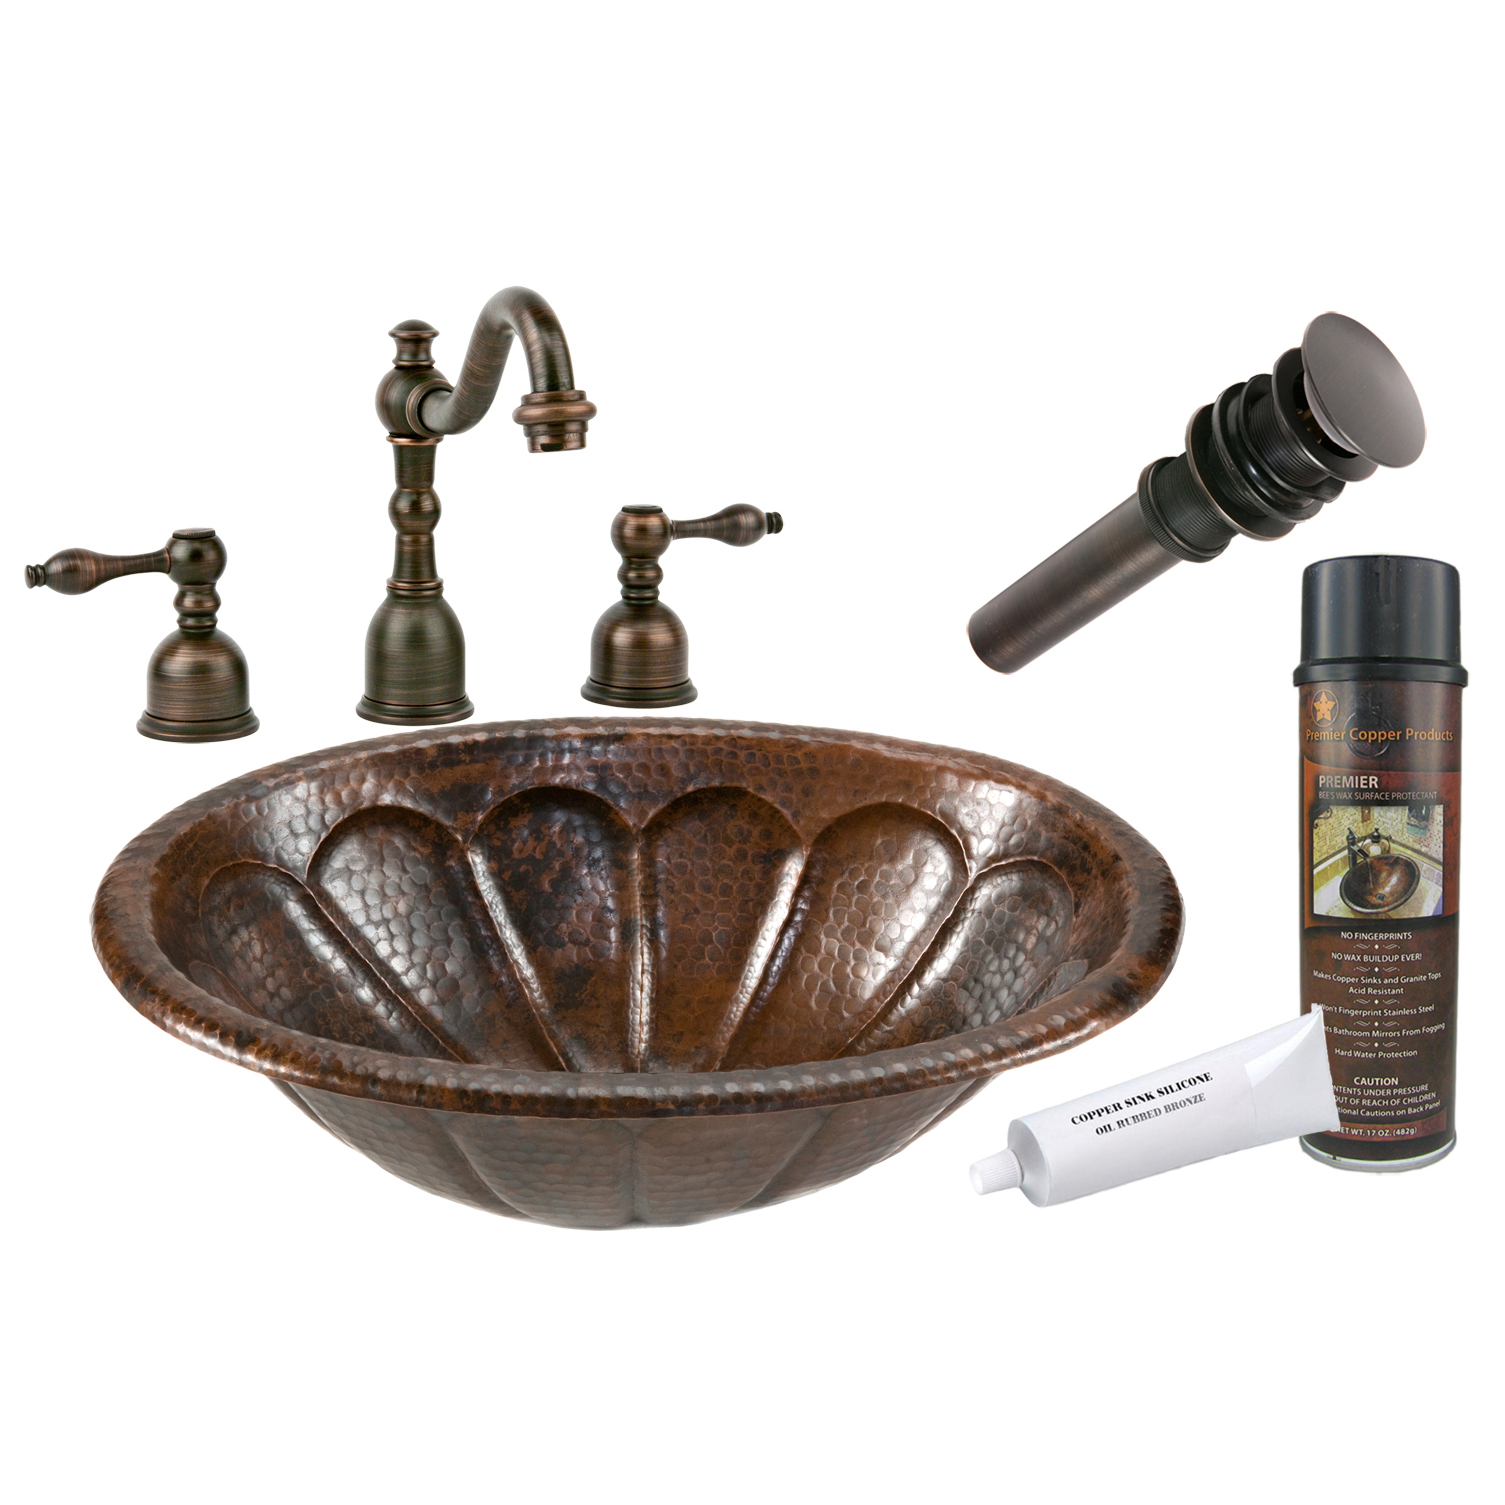 Oval Sunburst Self Rimming Hammered Coopper Sink, Faucet and Accessories Package, Oil Rubbed Bronze